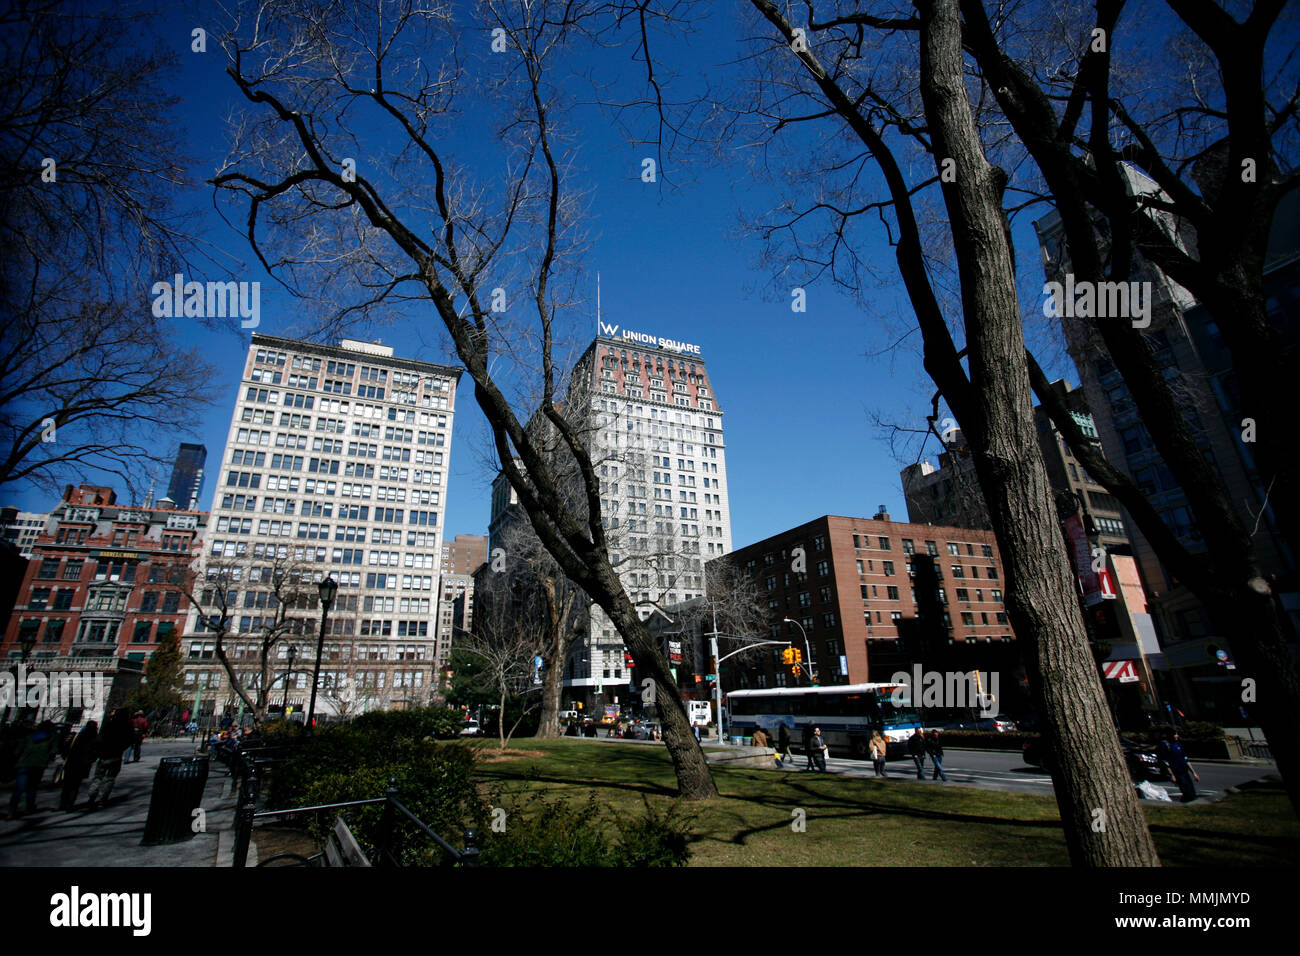 Union Square in Manhattan, New York CIty - Stock Image